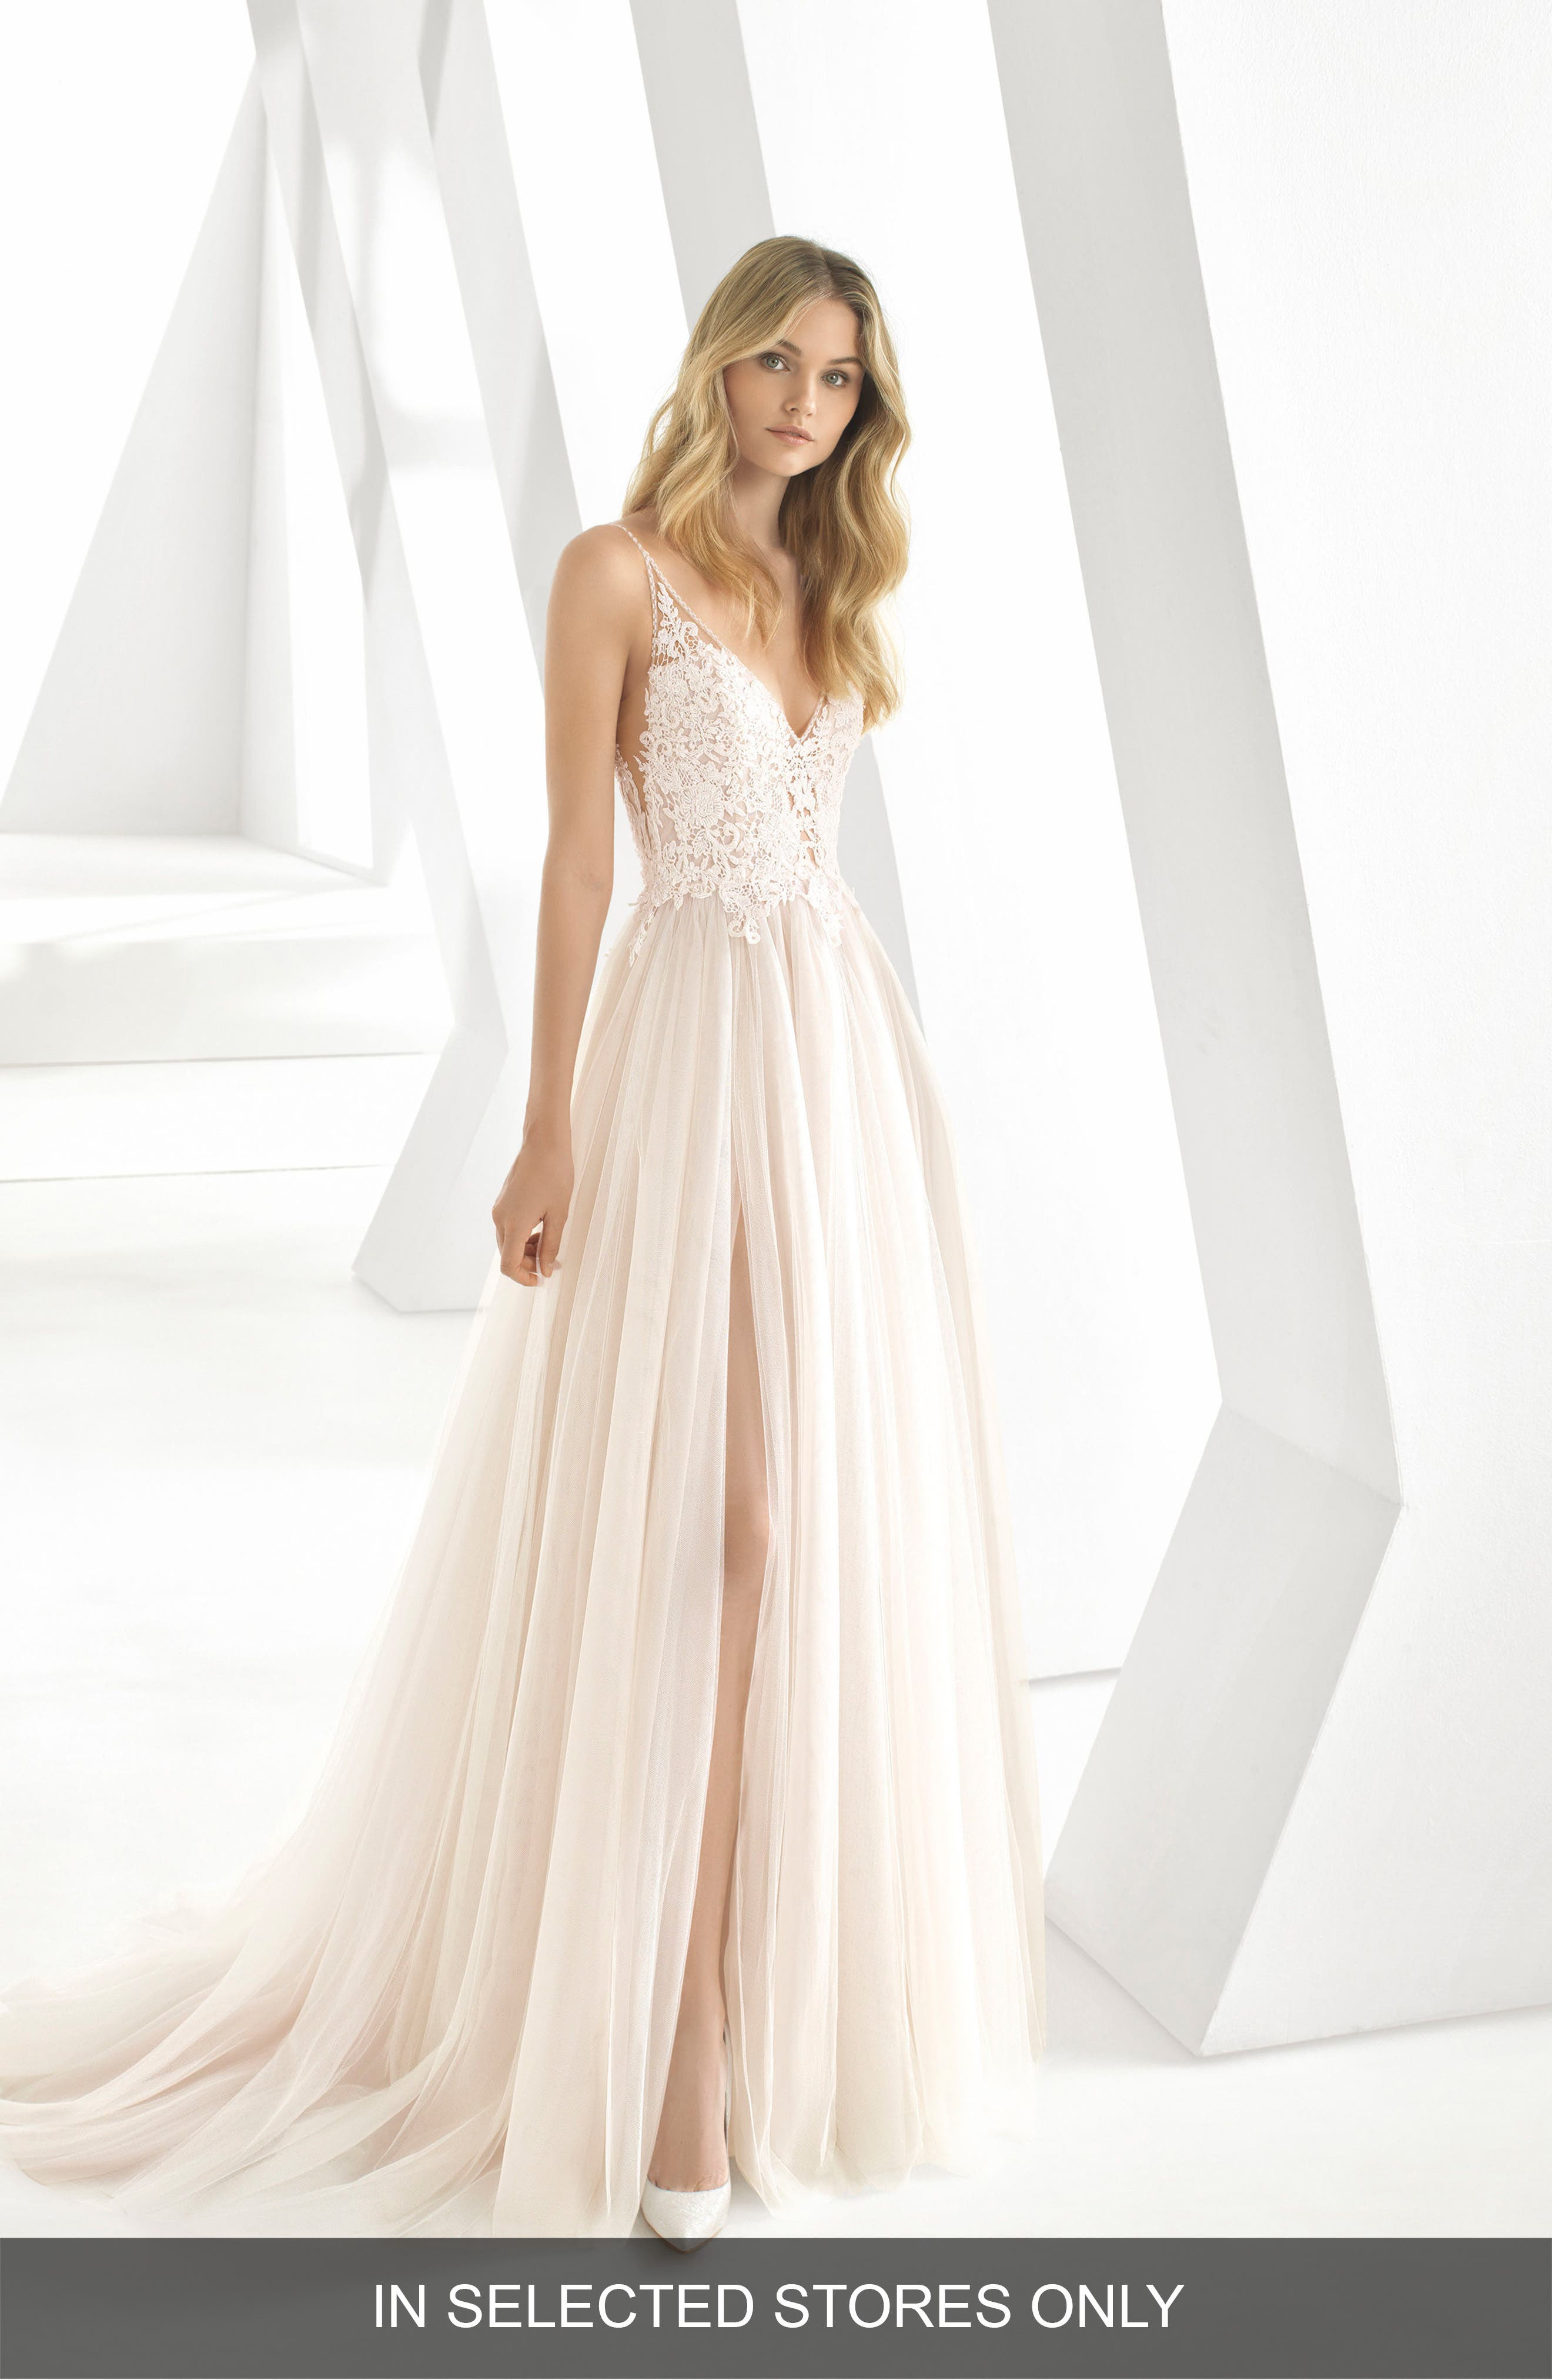 Donata Front Slit Lace & Tulle Wedding Gown,                         Main,                         color, NATURAL/ NUDE